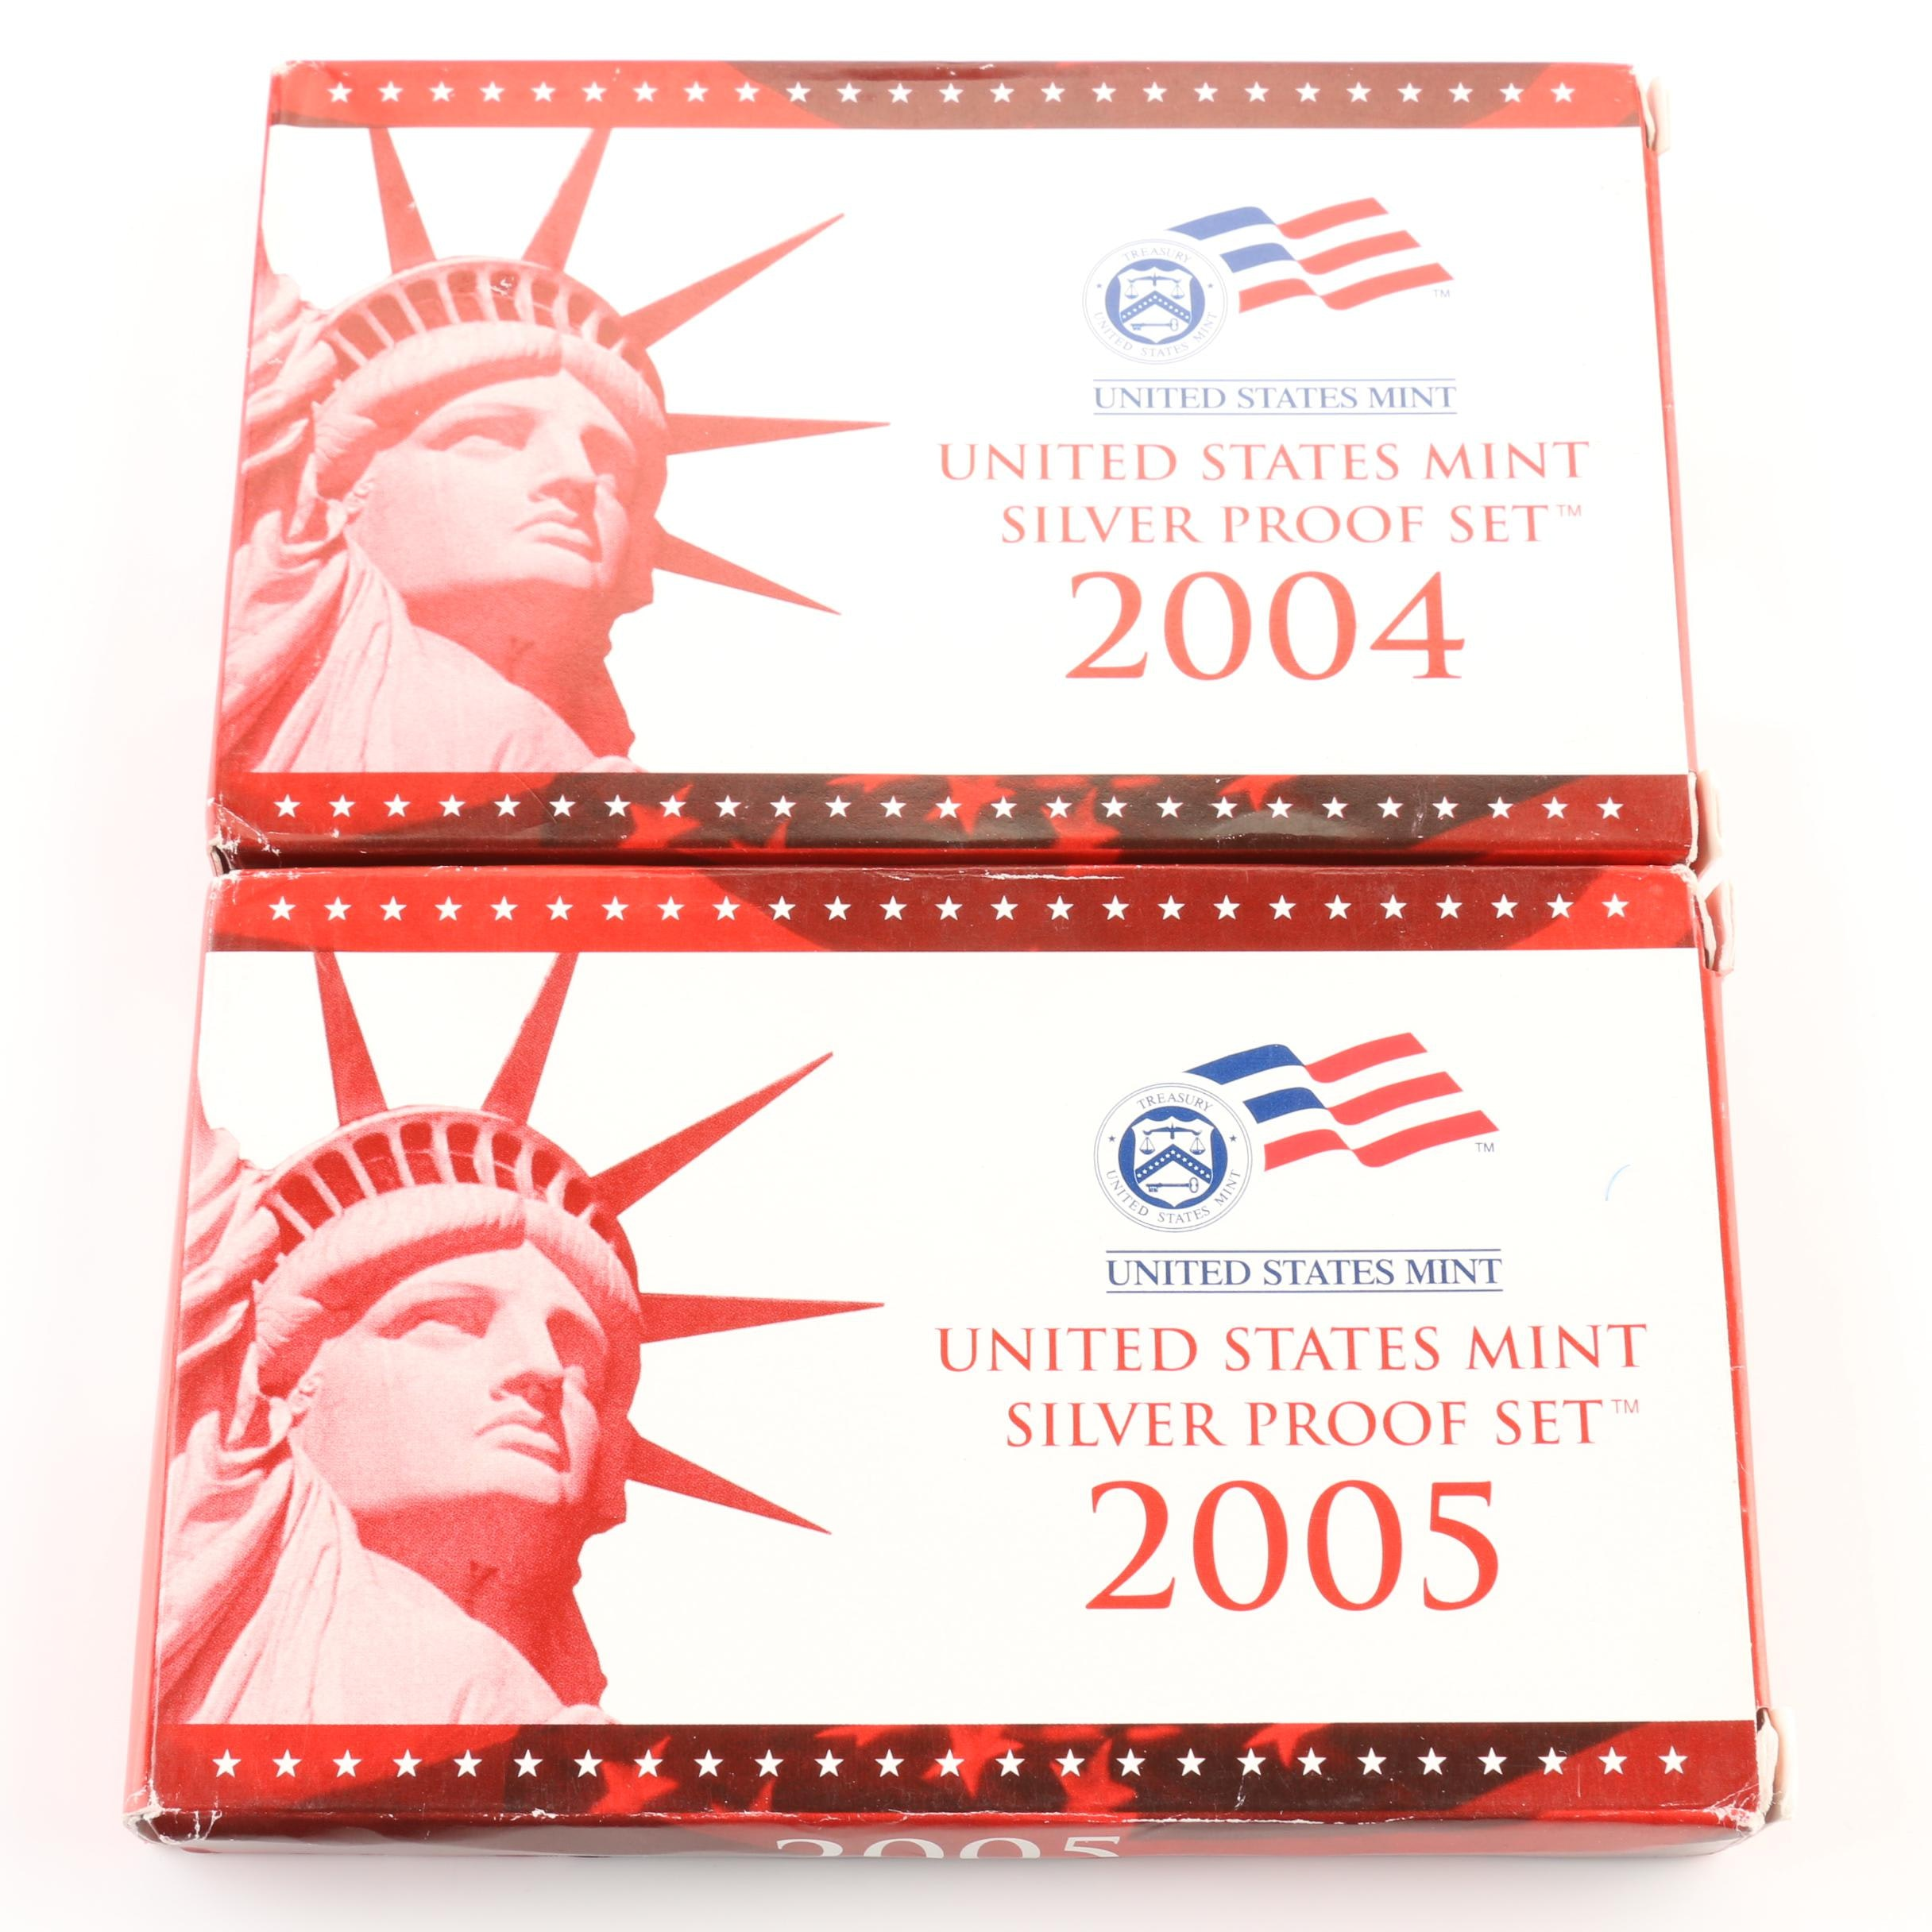 2004 and 2005 United States Mint Silver Proof Sets